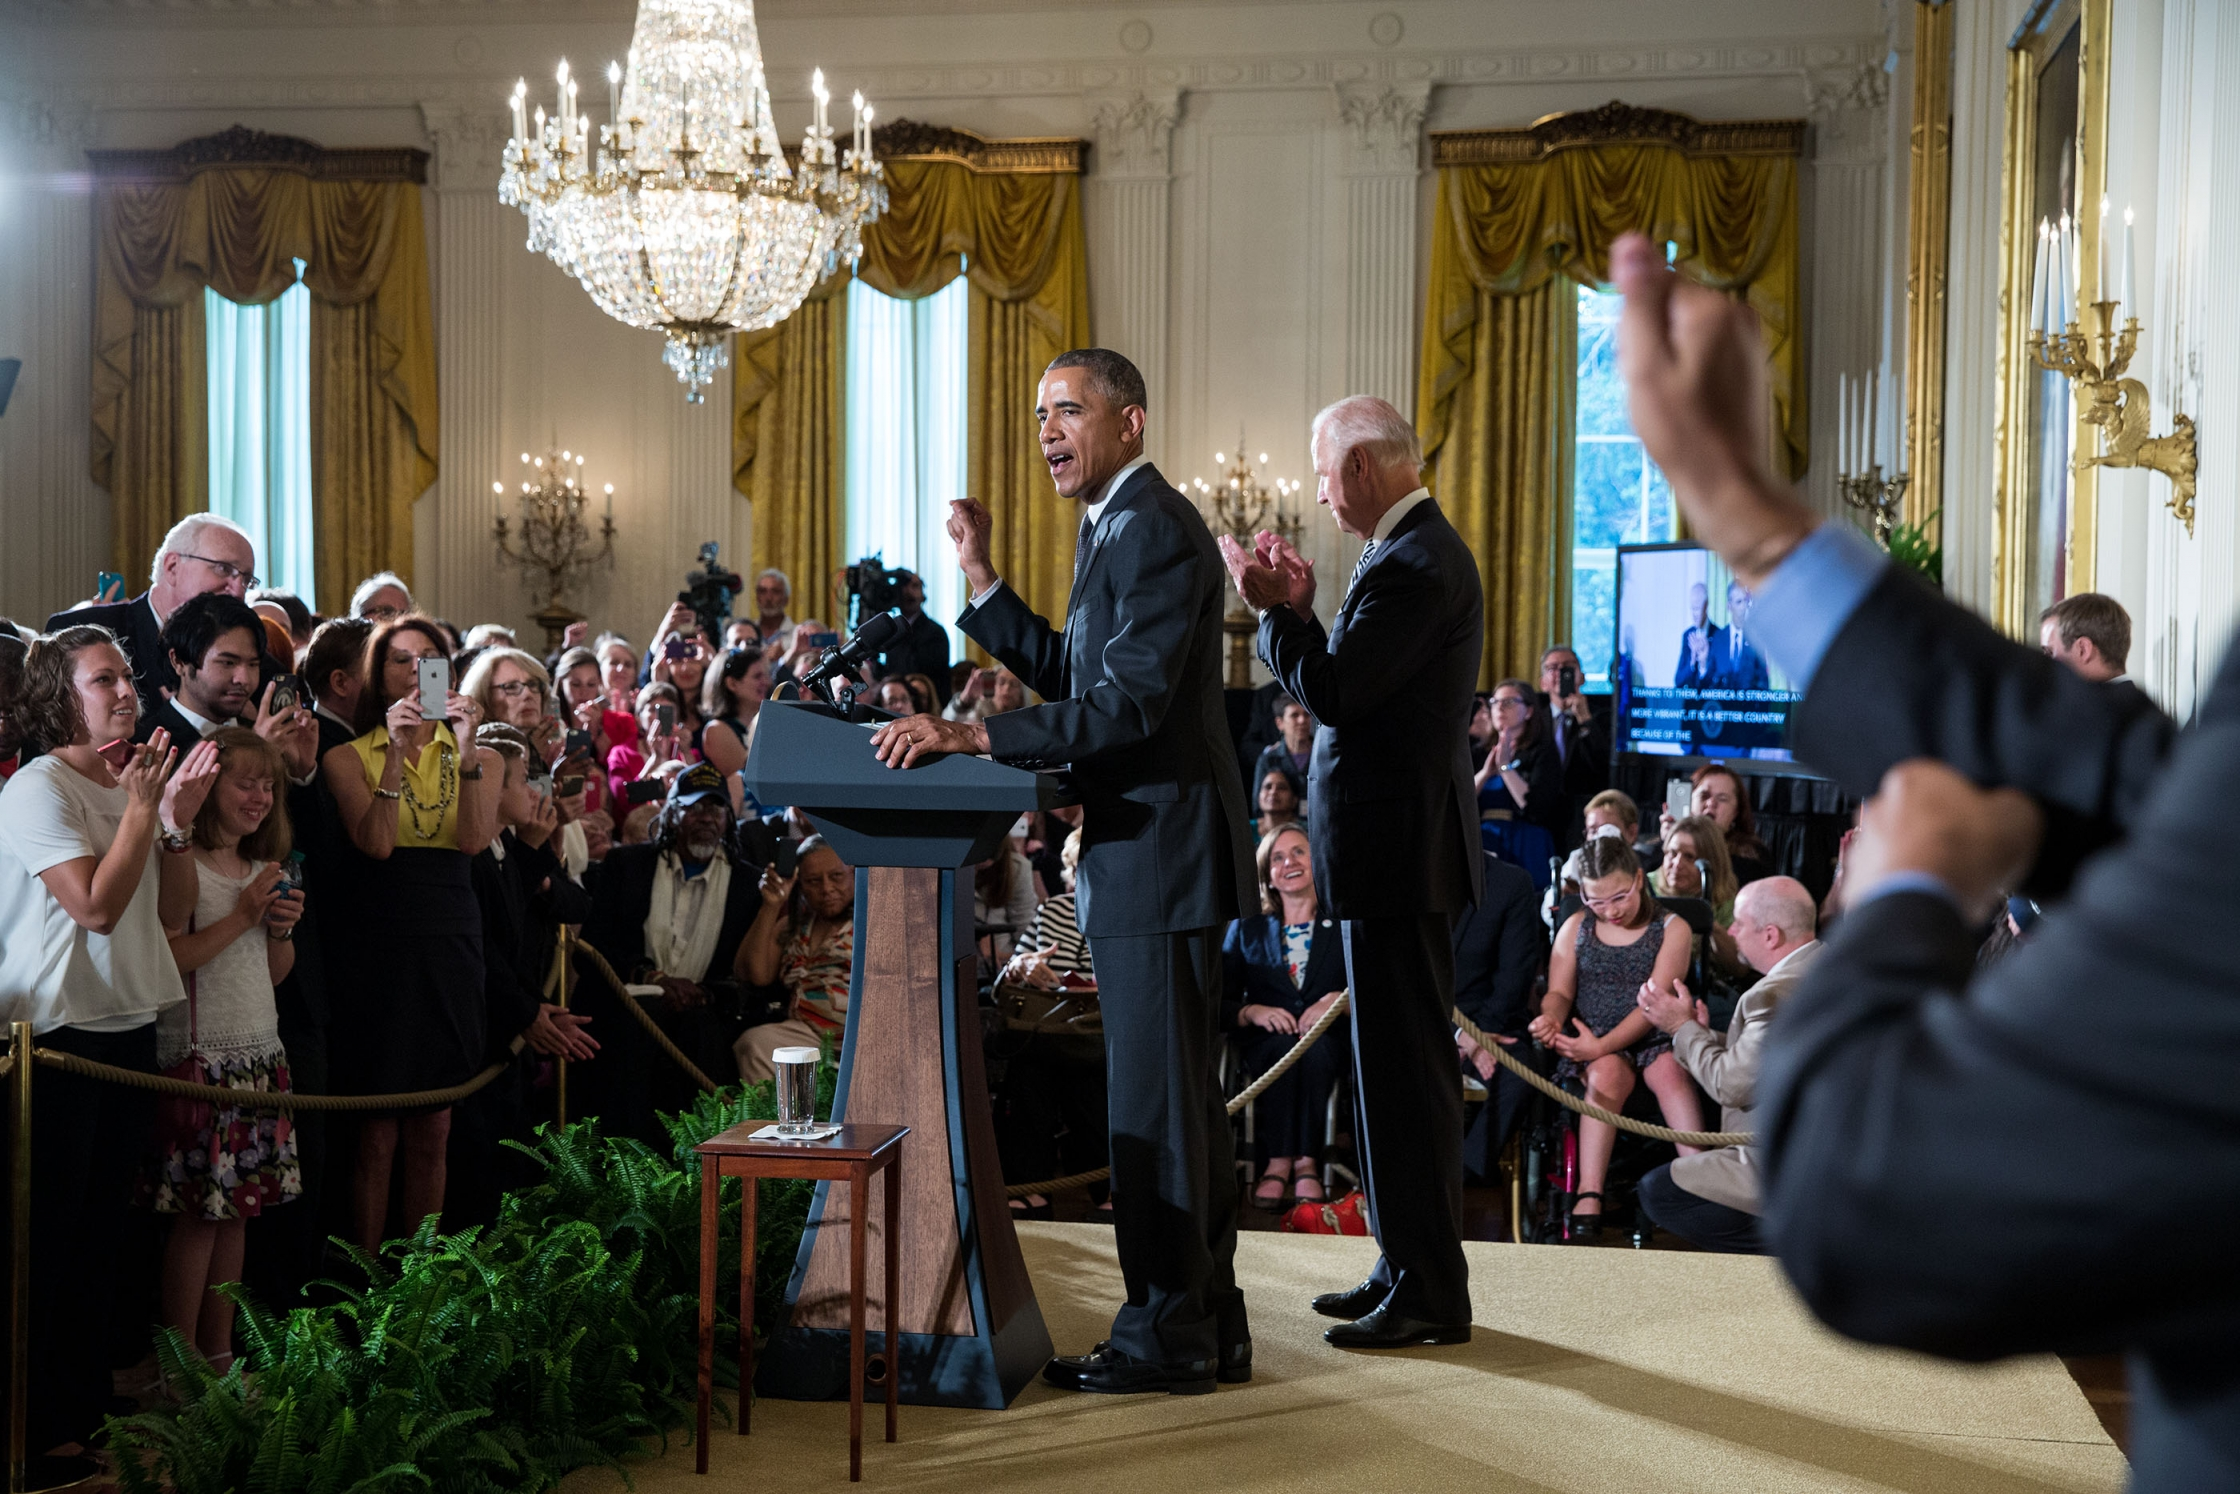 An interpreter signs in the foreground while President Barack Obama, with Vice President Joe Biden, delivers remarks during a reception for the 25th anniversary of the Americans with Disabilities Act (ADA) in the East Room of the White House, July 20, 2015.